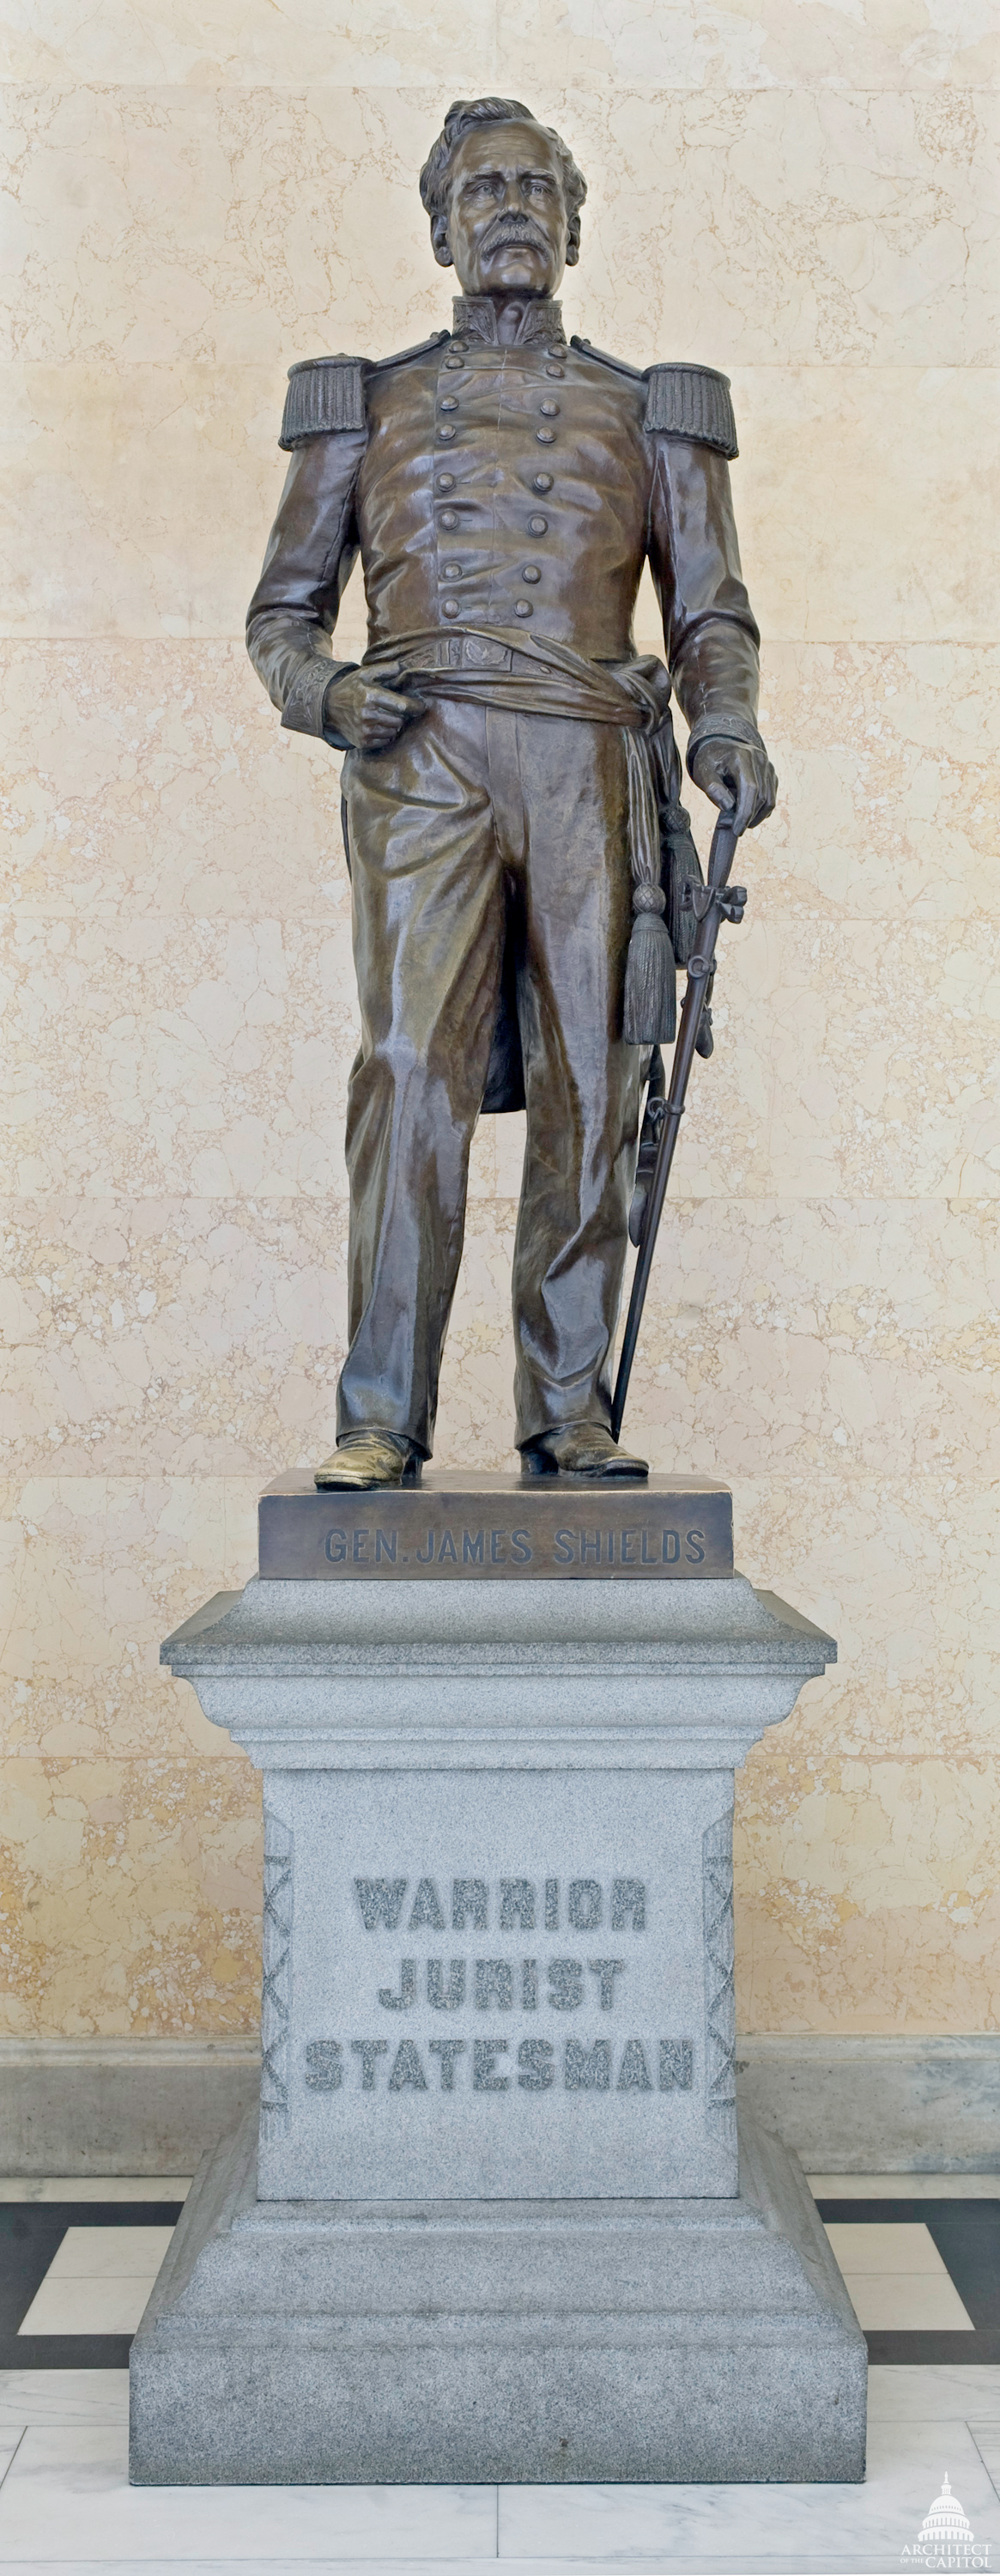 James Shields Architect Of The Capitol